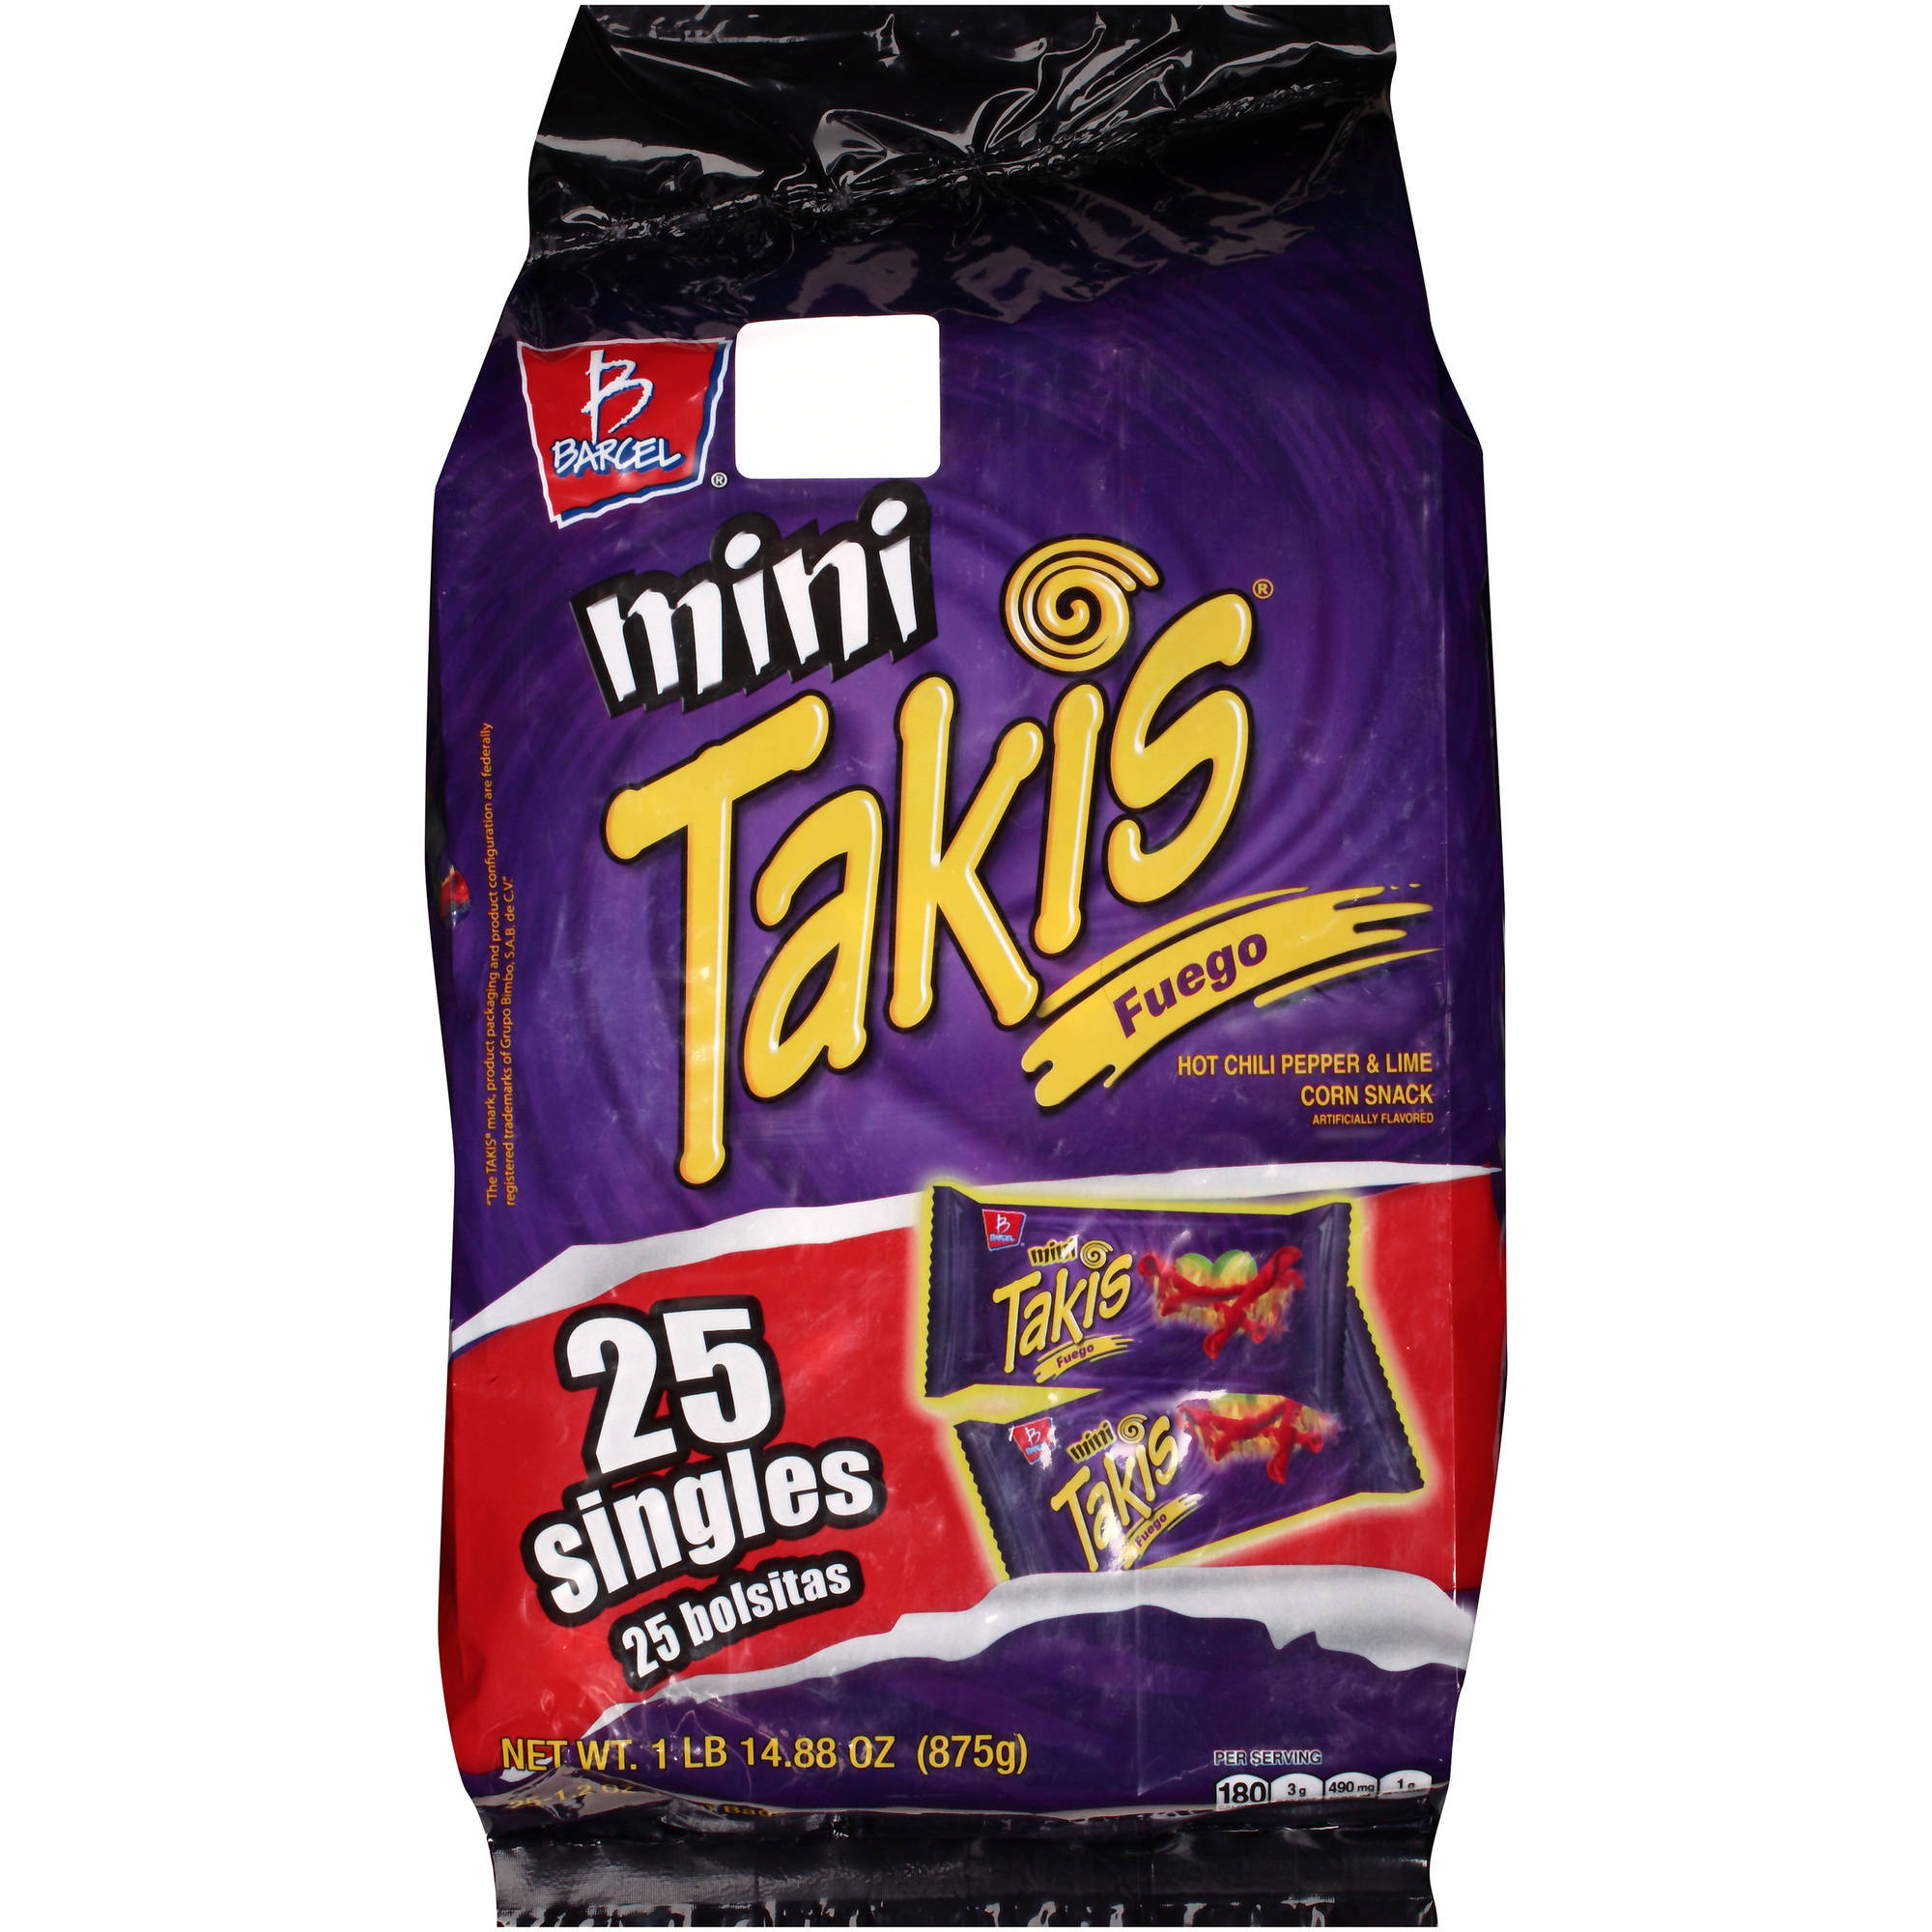 Barcel Mini Takis Fuego Corn Snacks, 1.2 oz, 25 count